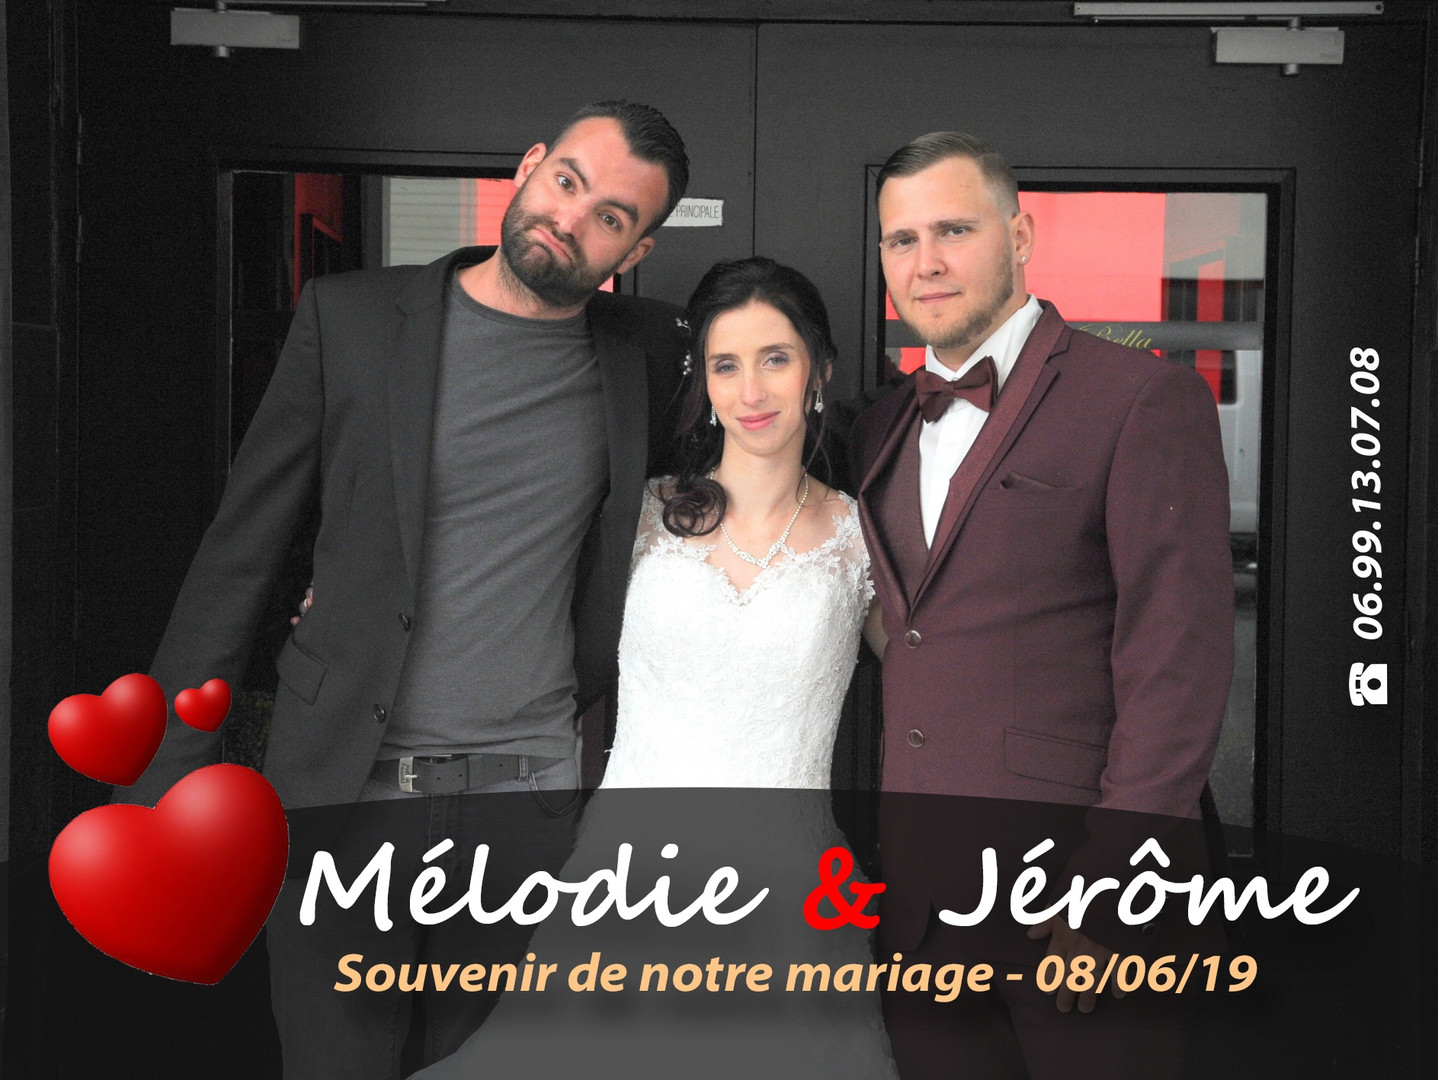 MARIAGE MELODIE ET JEROME